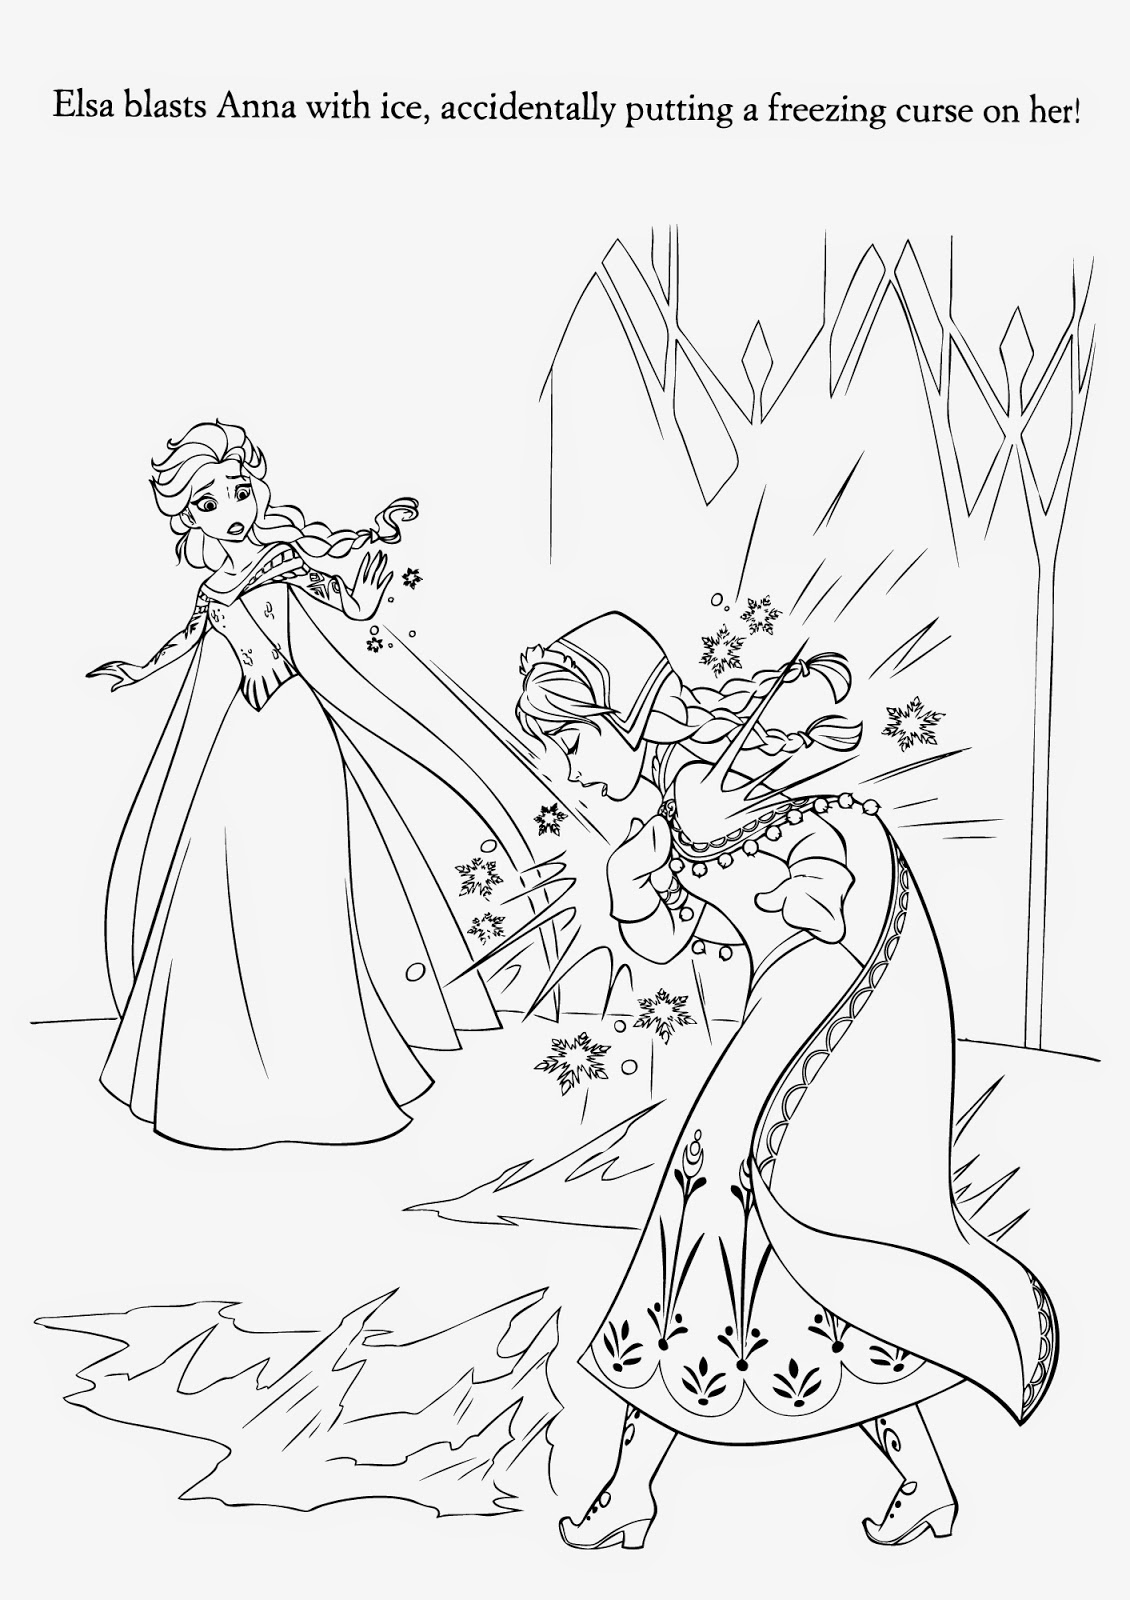 coloring pages to print frozen 15 beautiful disney frozen coloring pages free instant coloring to pages print frozen